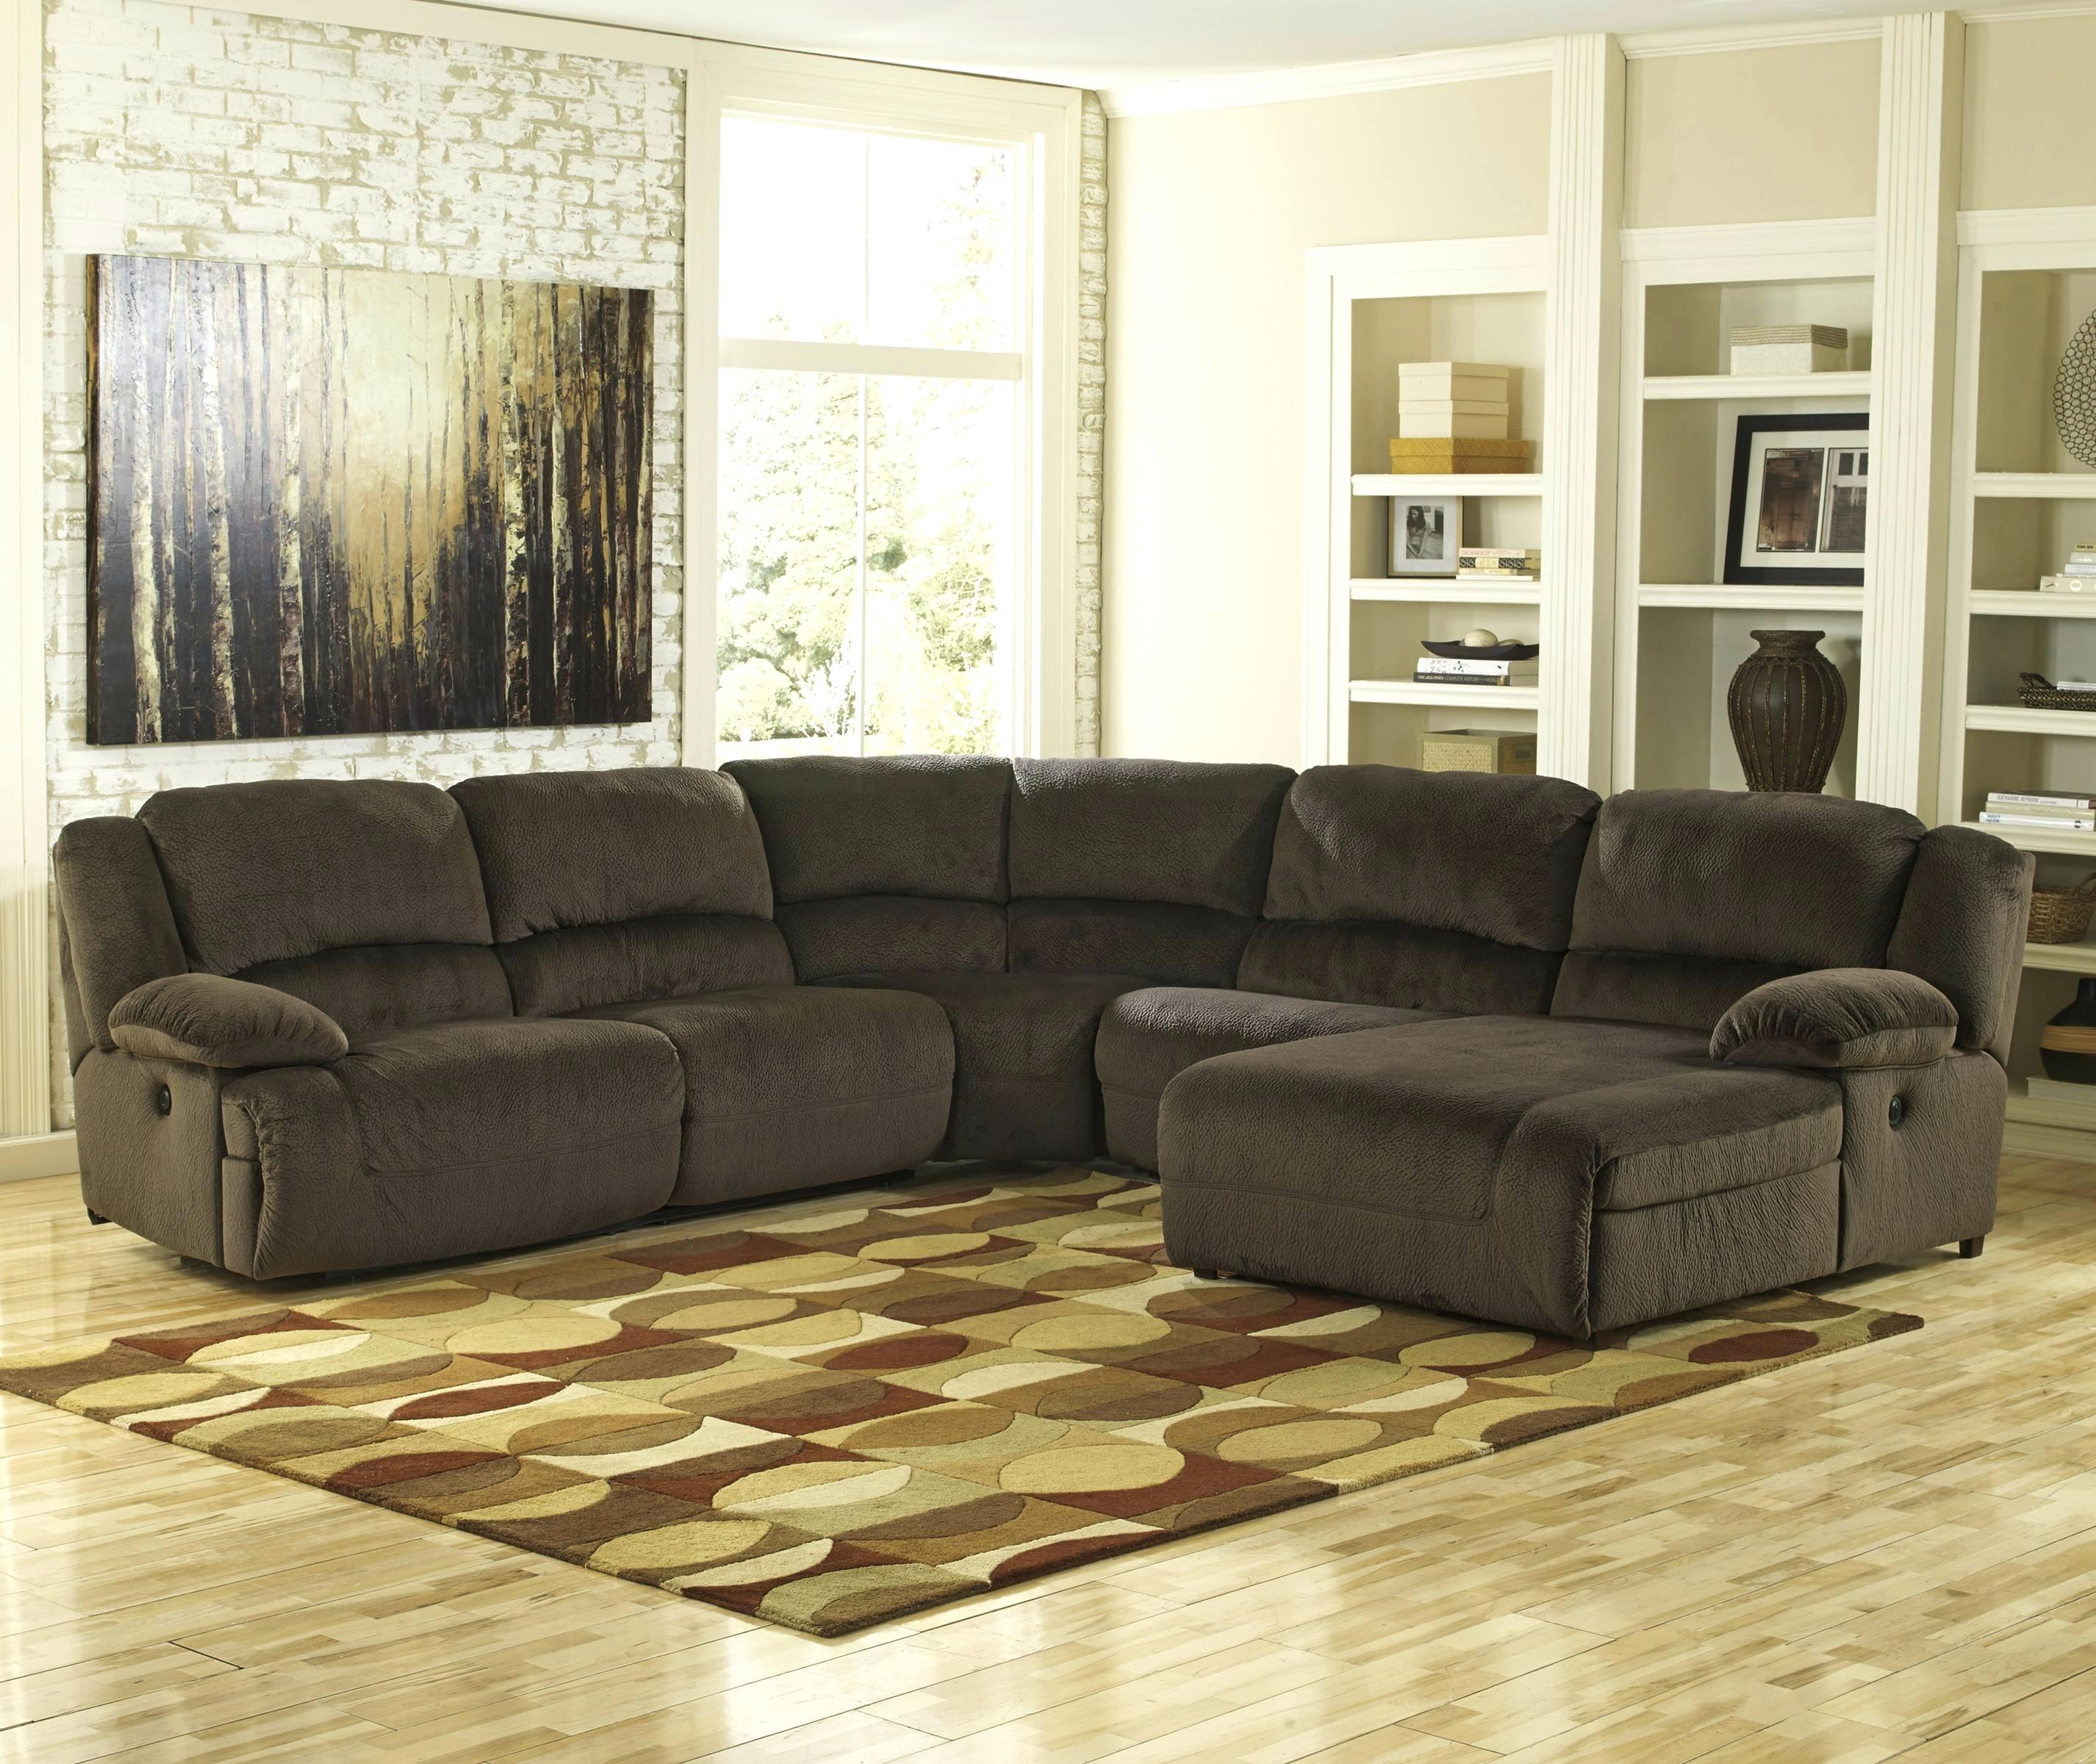 ashley furniture joliet il signature design by chocolate reclining sectional with right press back chaise ashley furniture near joliet il